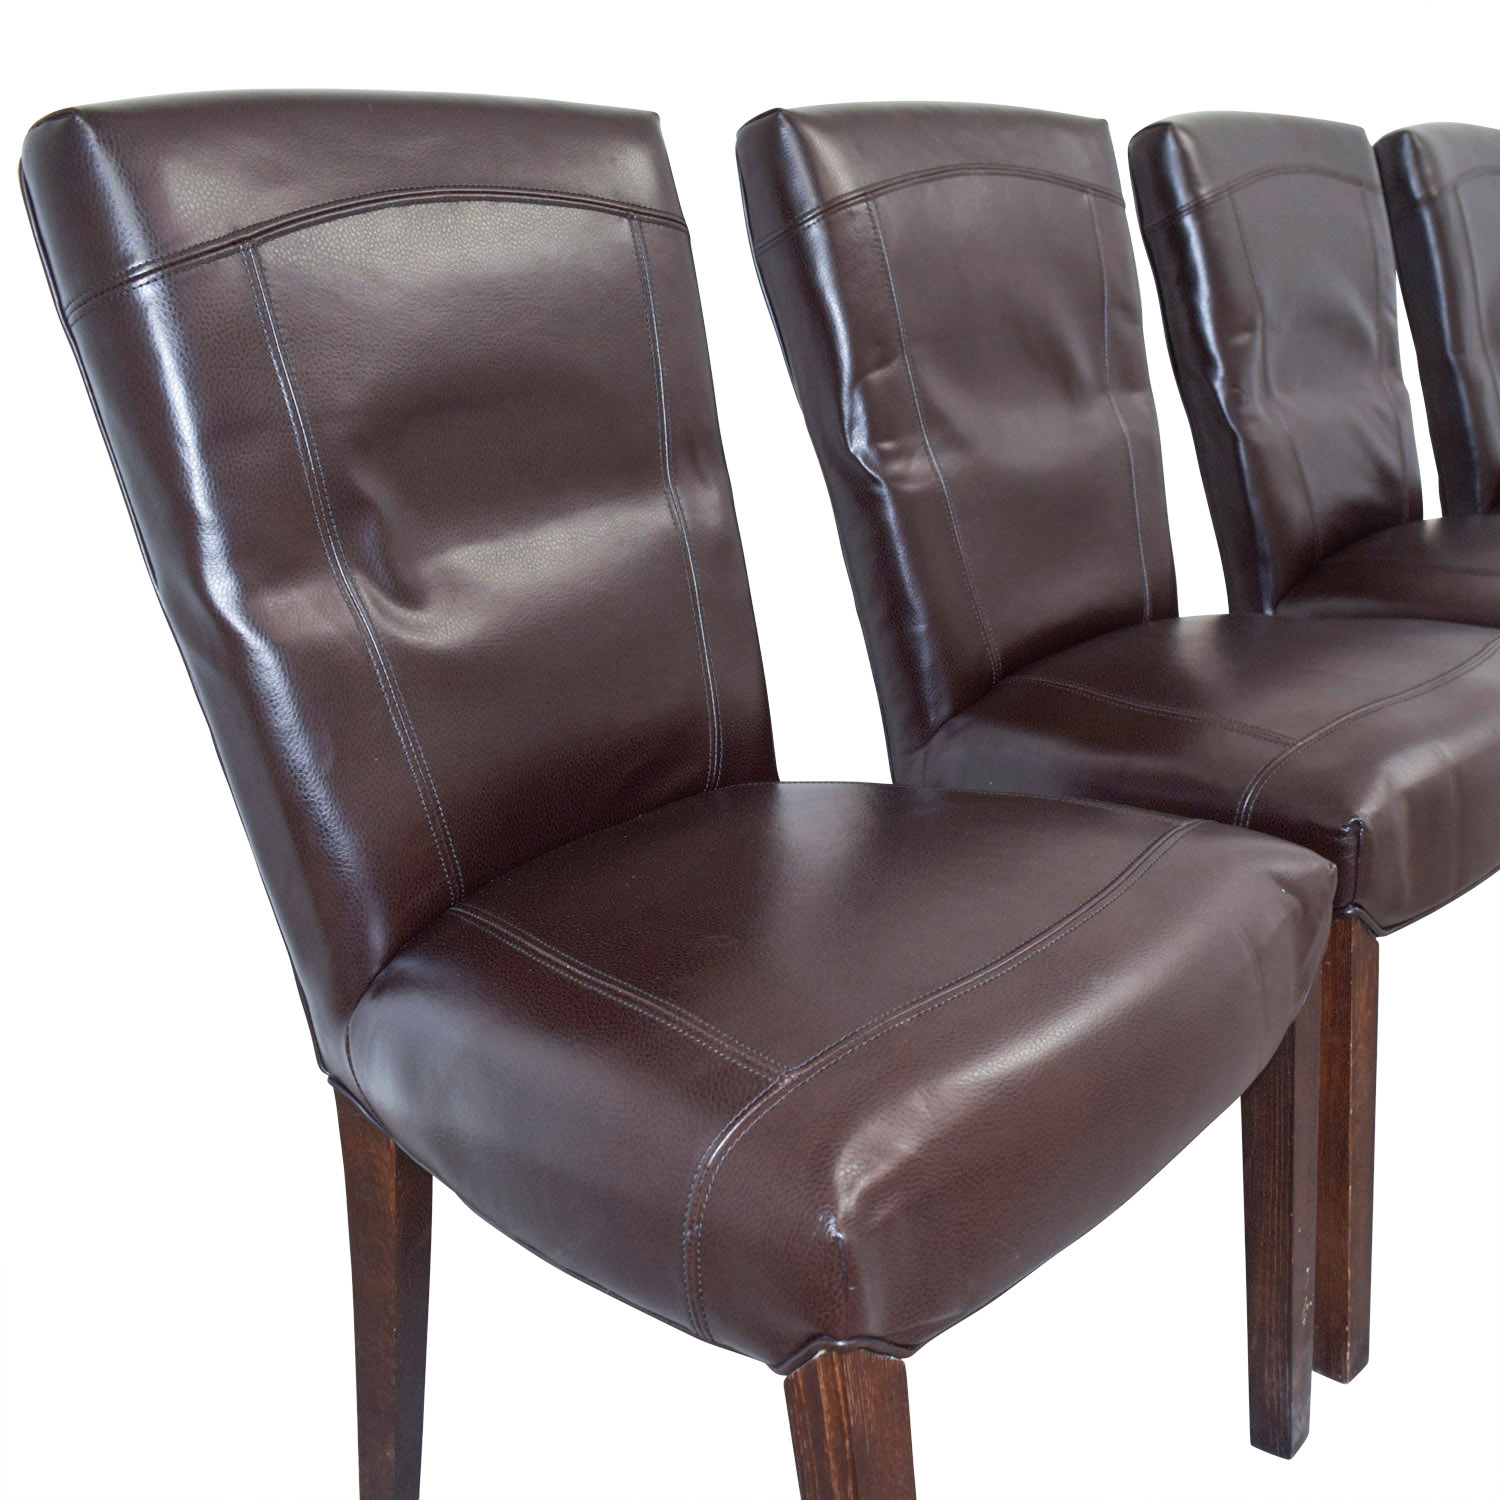 Arhaus Dining Chairs 90 Off Arhaus Arhaus Capri Brown Chairs Chairs